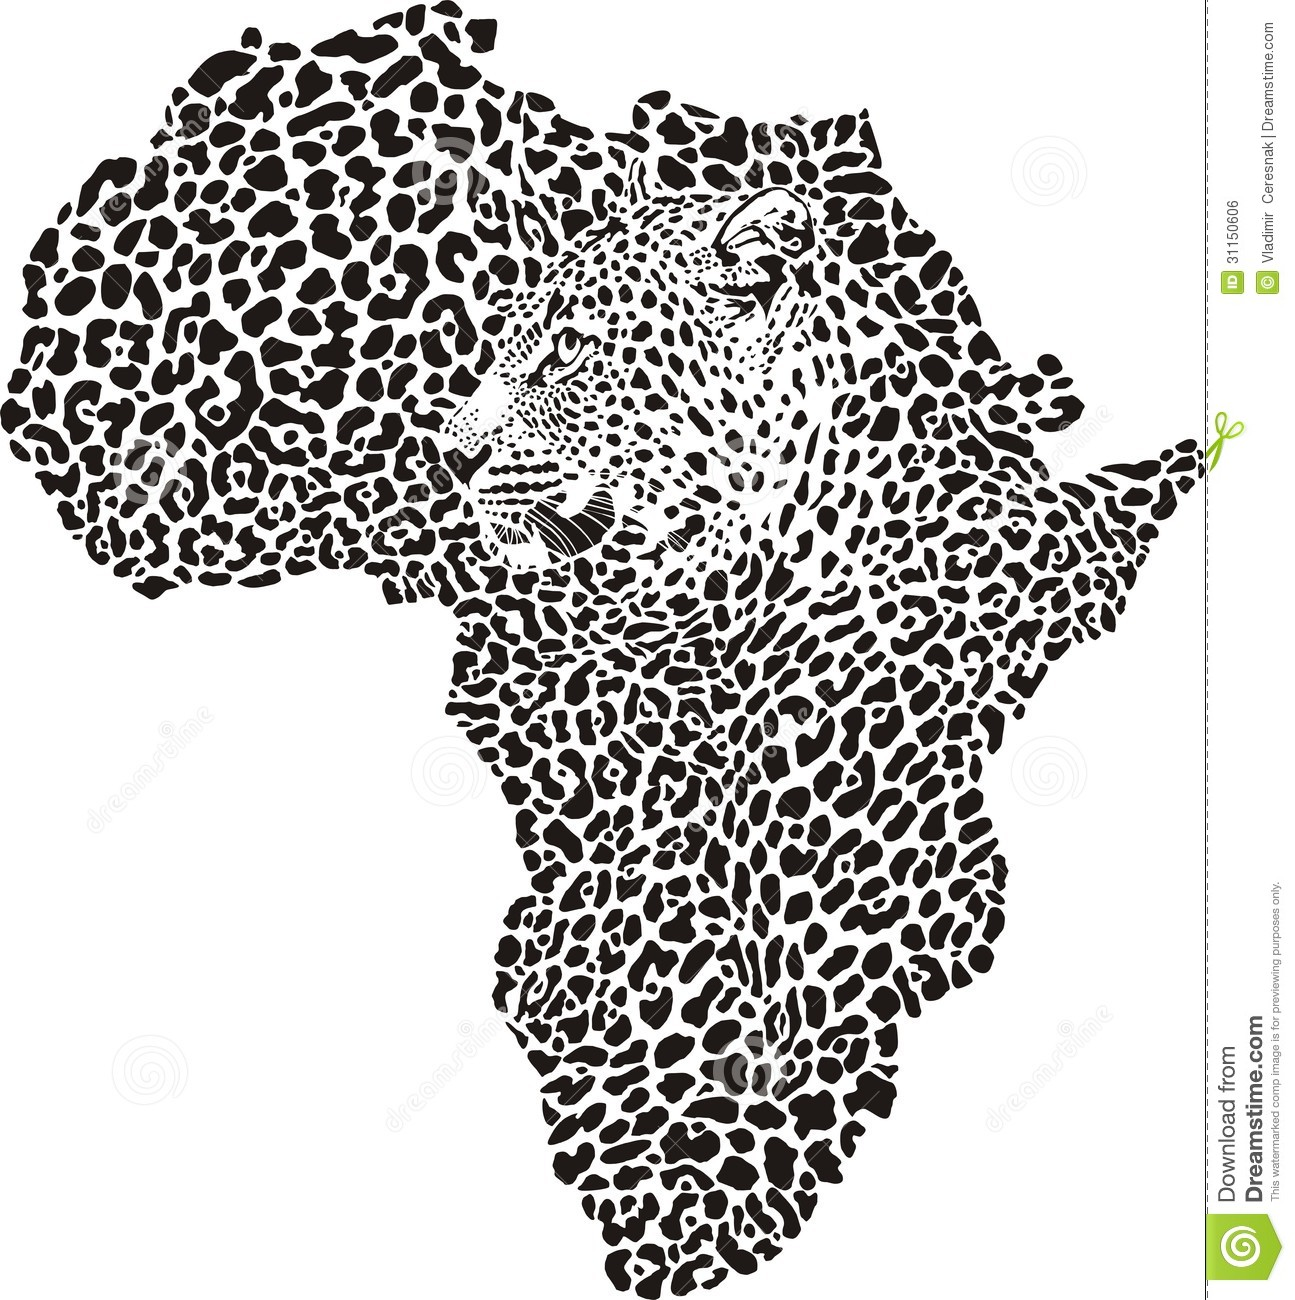 Leopard Skin And Head In Silhouette Africa Royalty Free Stock Image